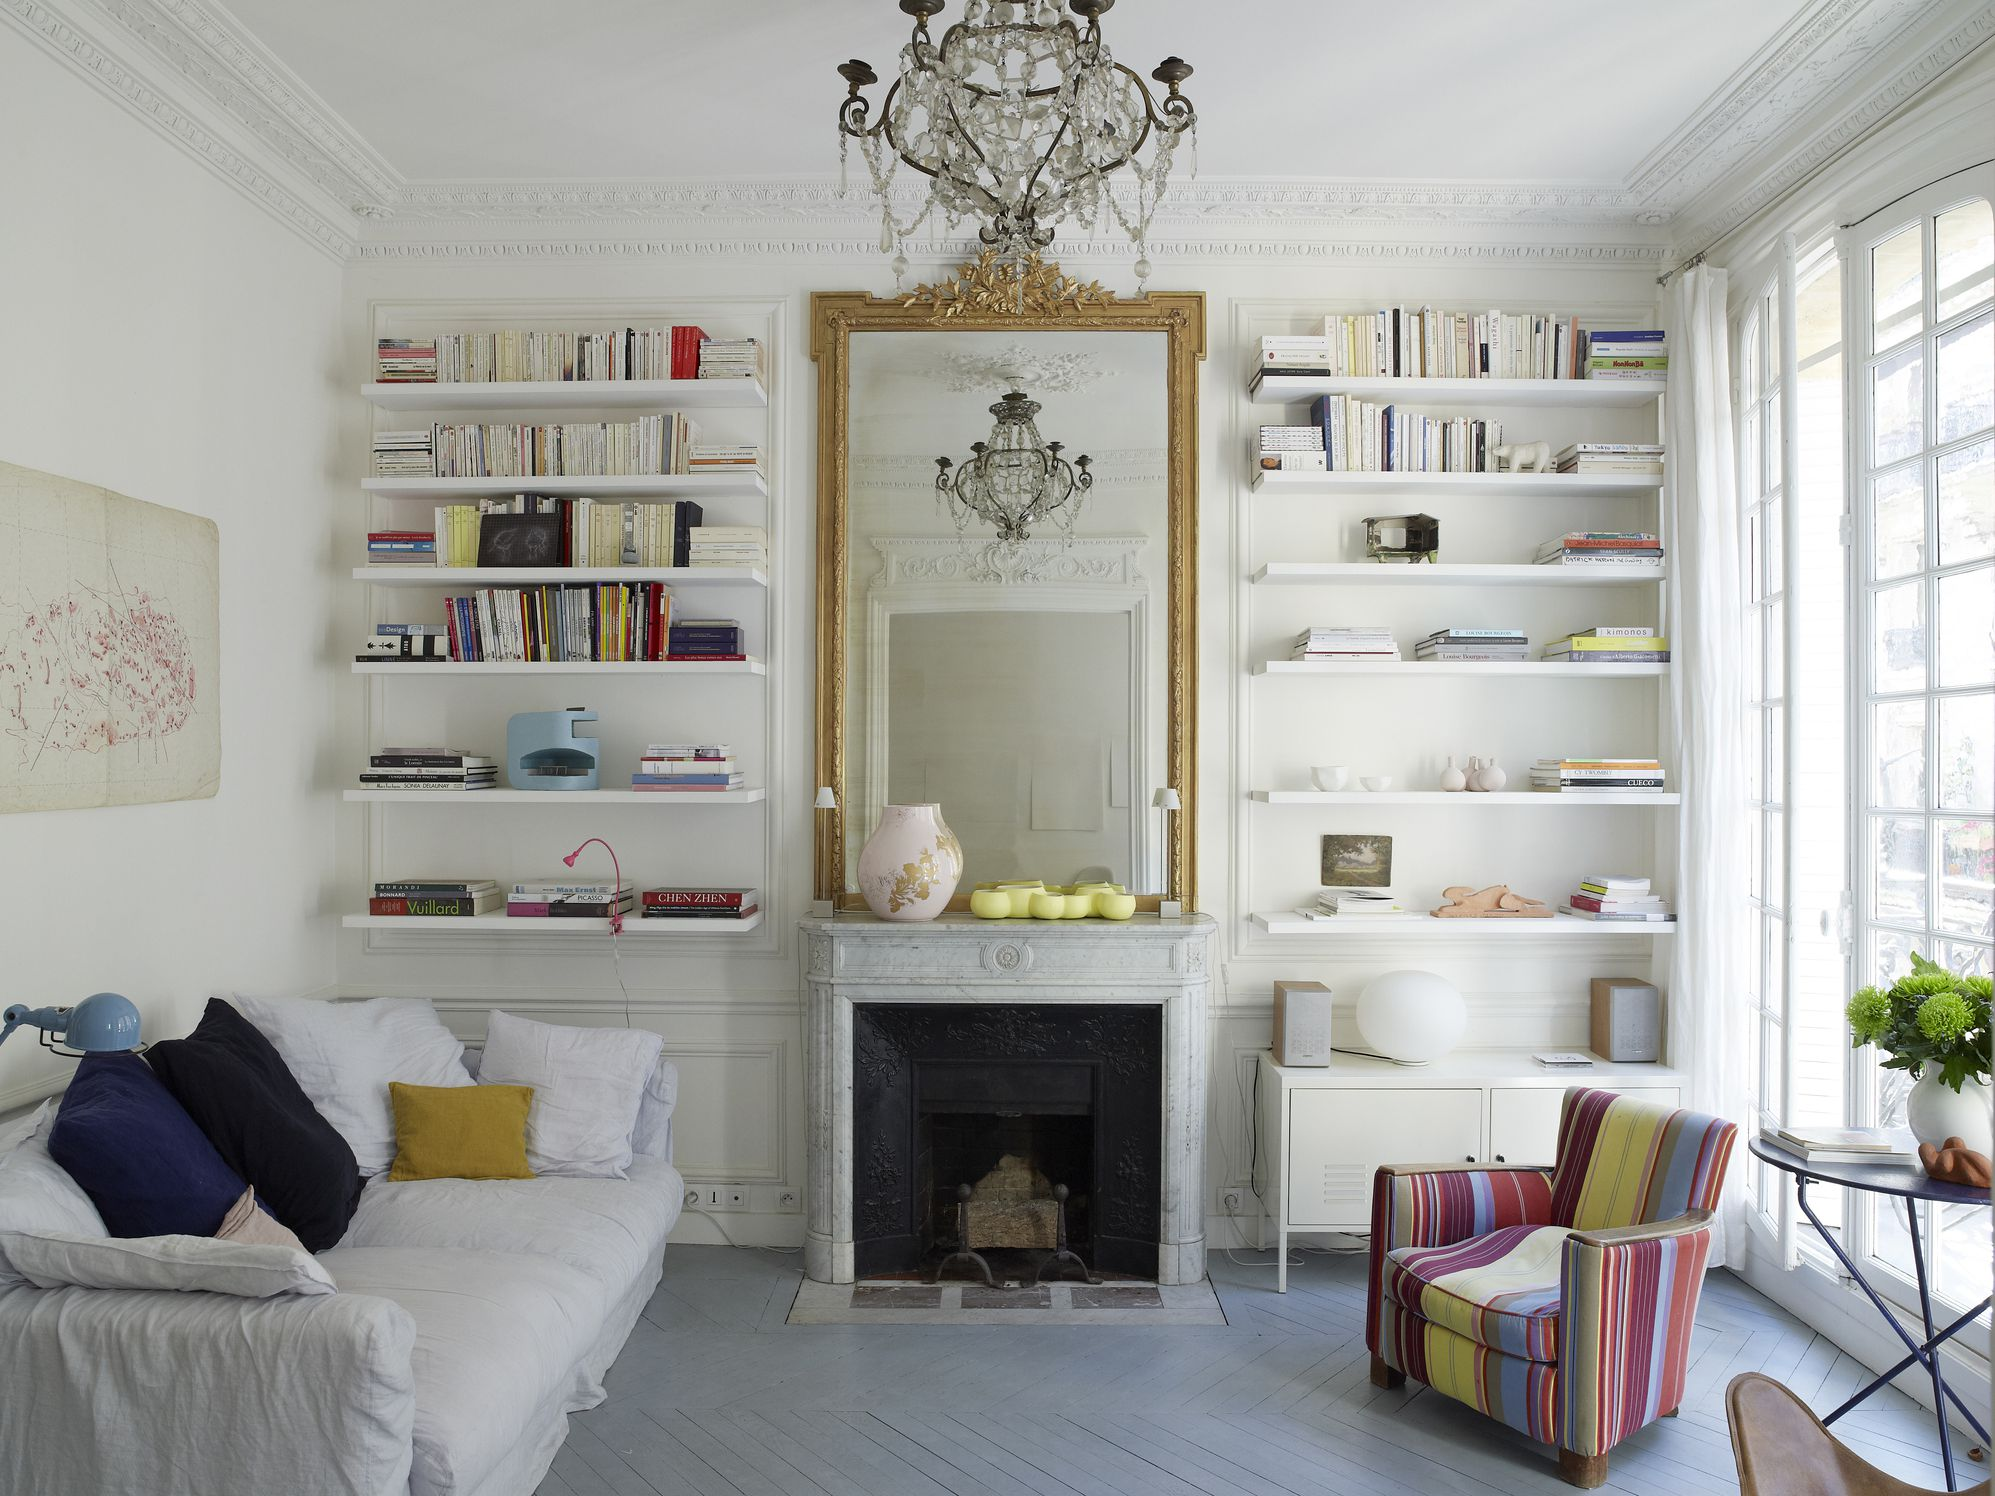 How To Use Mirrors Create Good Feng Shui, Is It Ok To Put Mirror In The Living Room